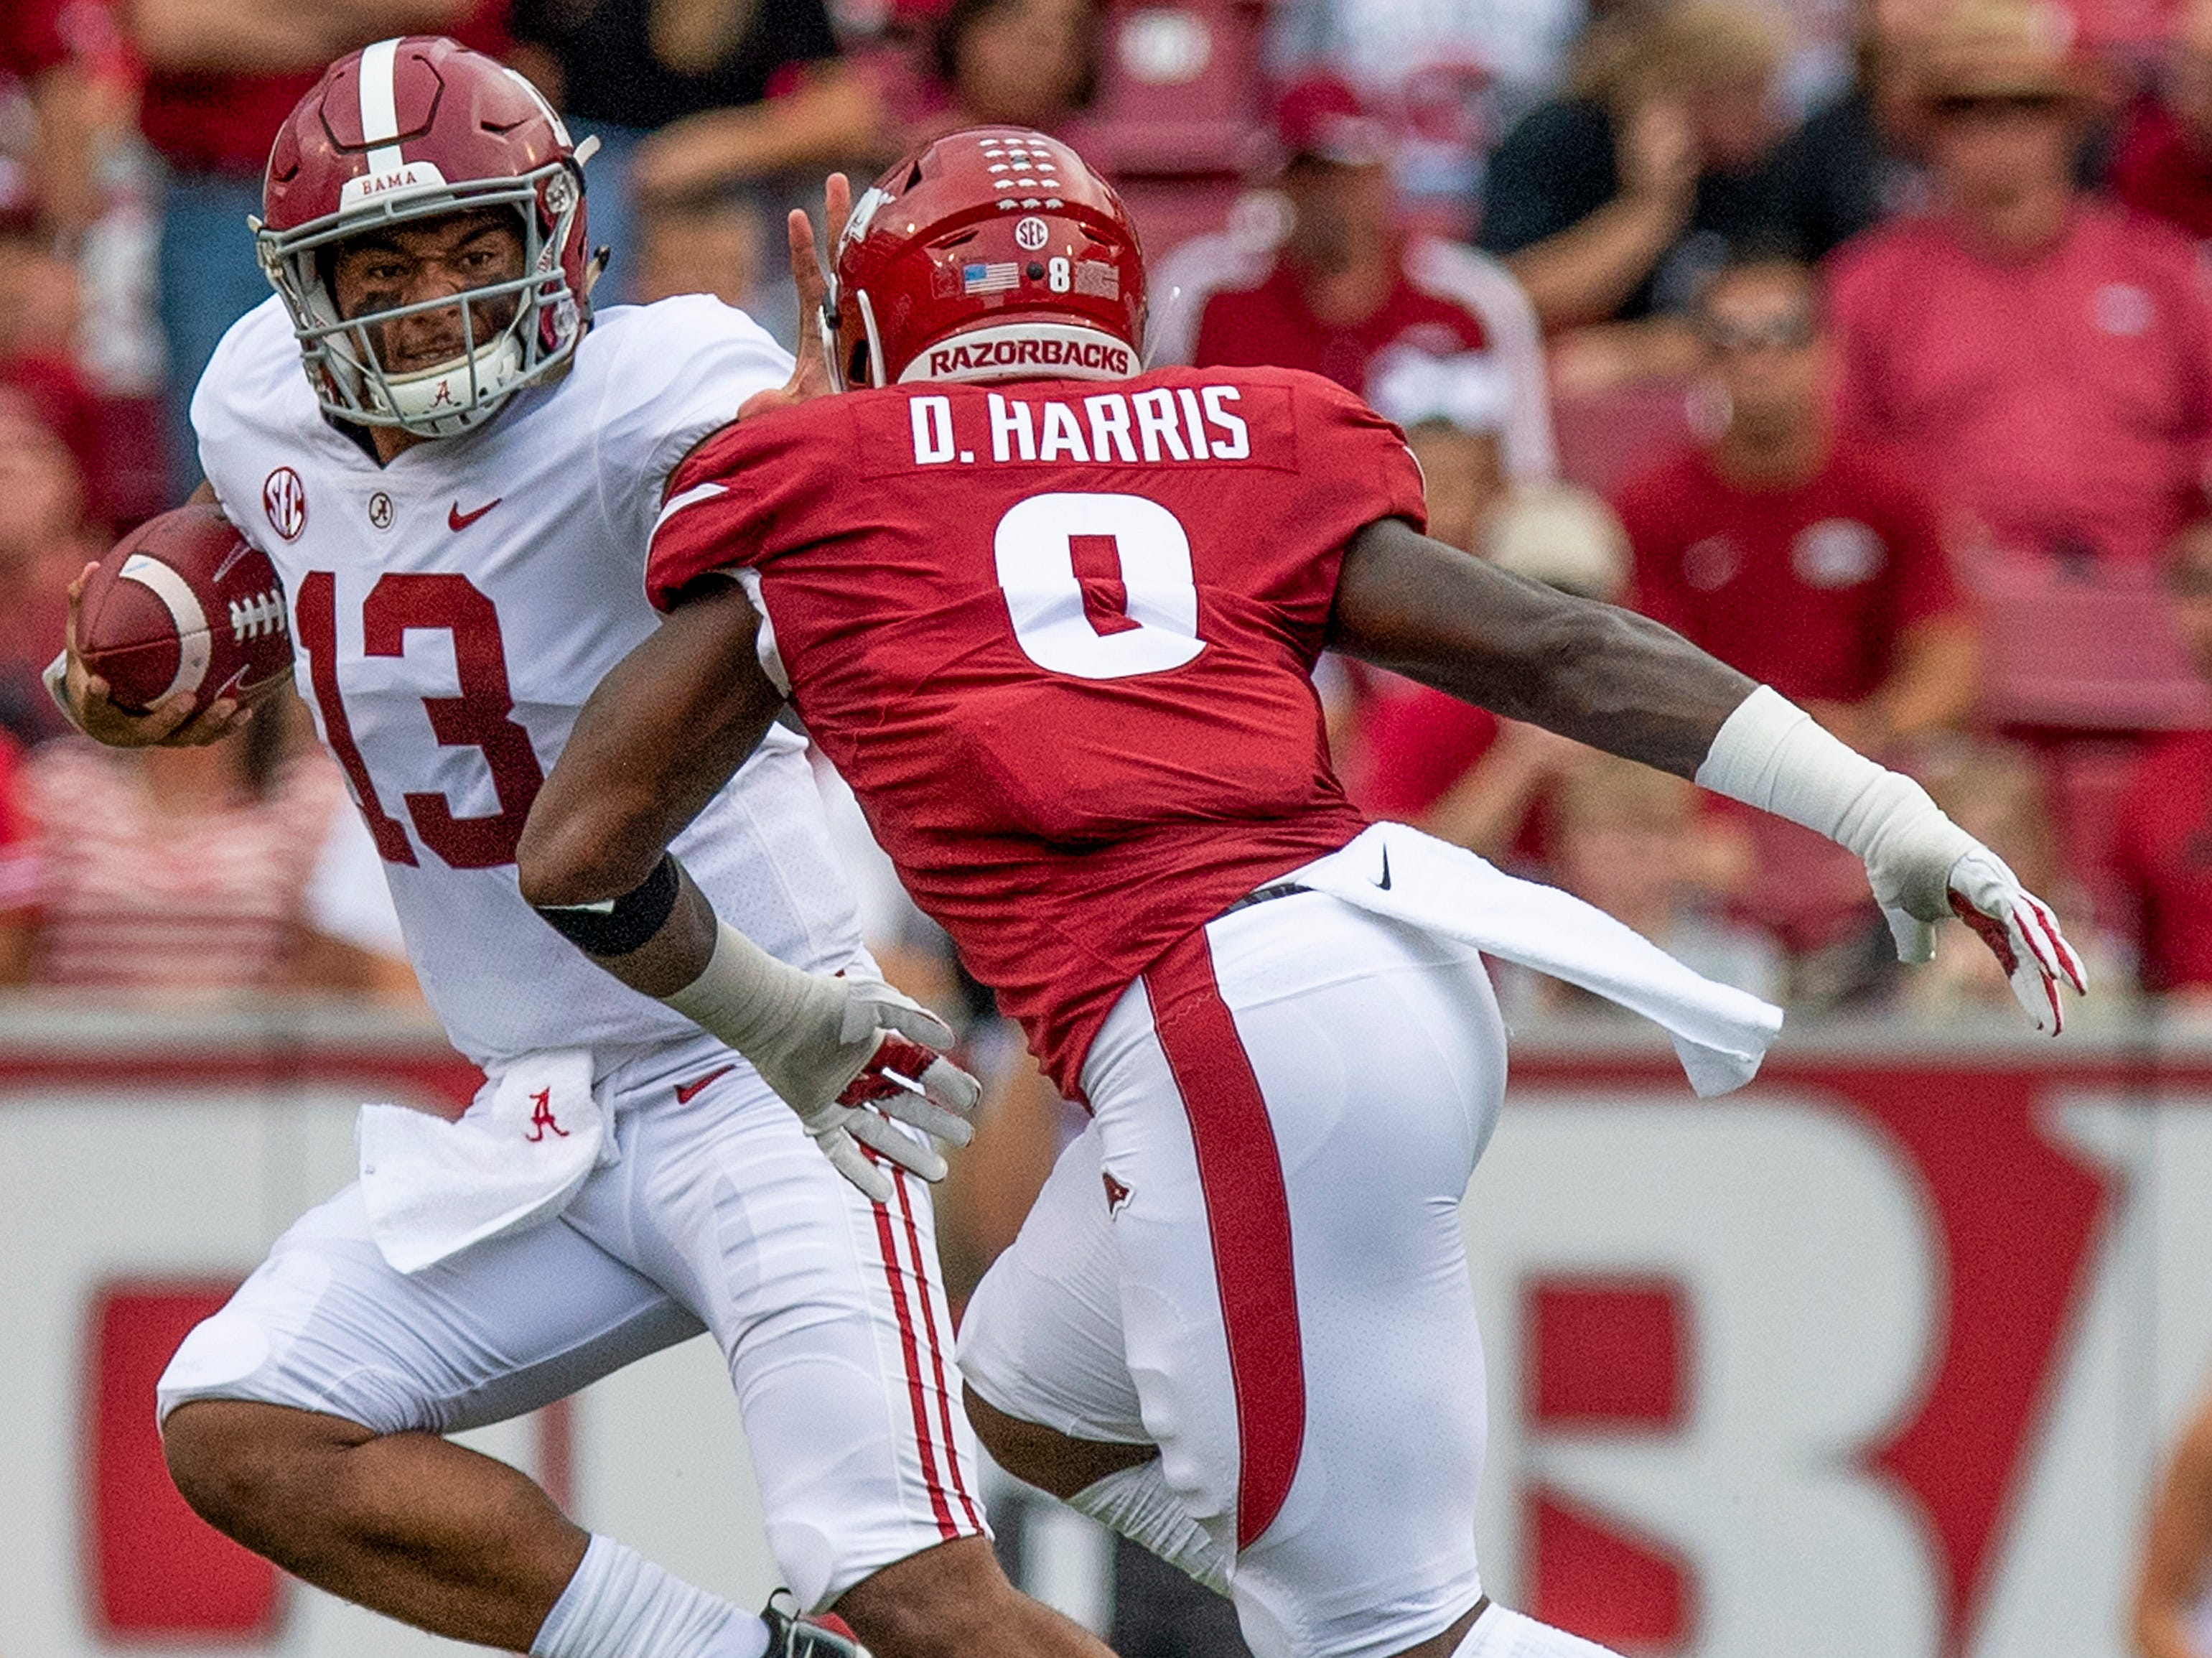 Alabama quarterback Tua Tagovailoa (13) tries to elude Arkansas linebacker DeÕJon Harris (8) during first half action in Fayetteville, Ark., on Saturday October 6, 2018.